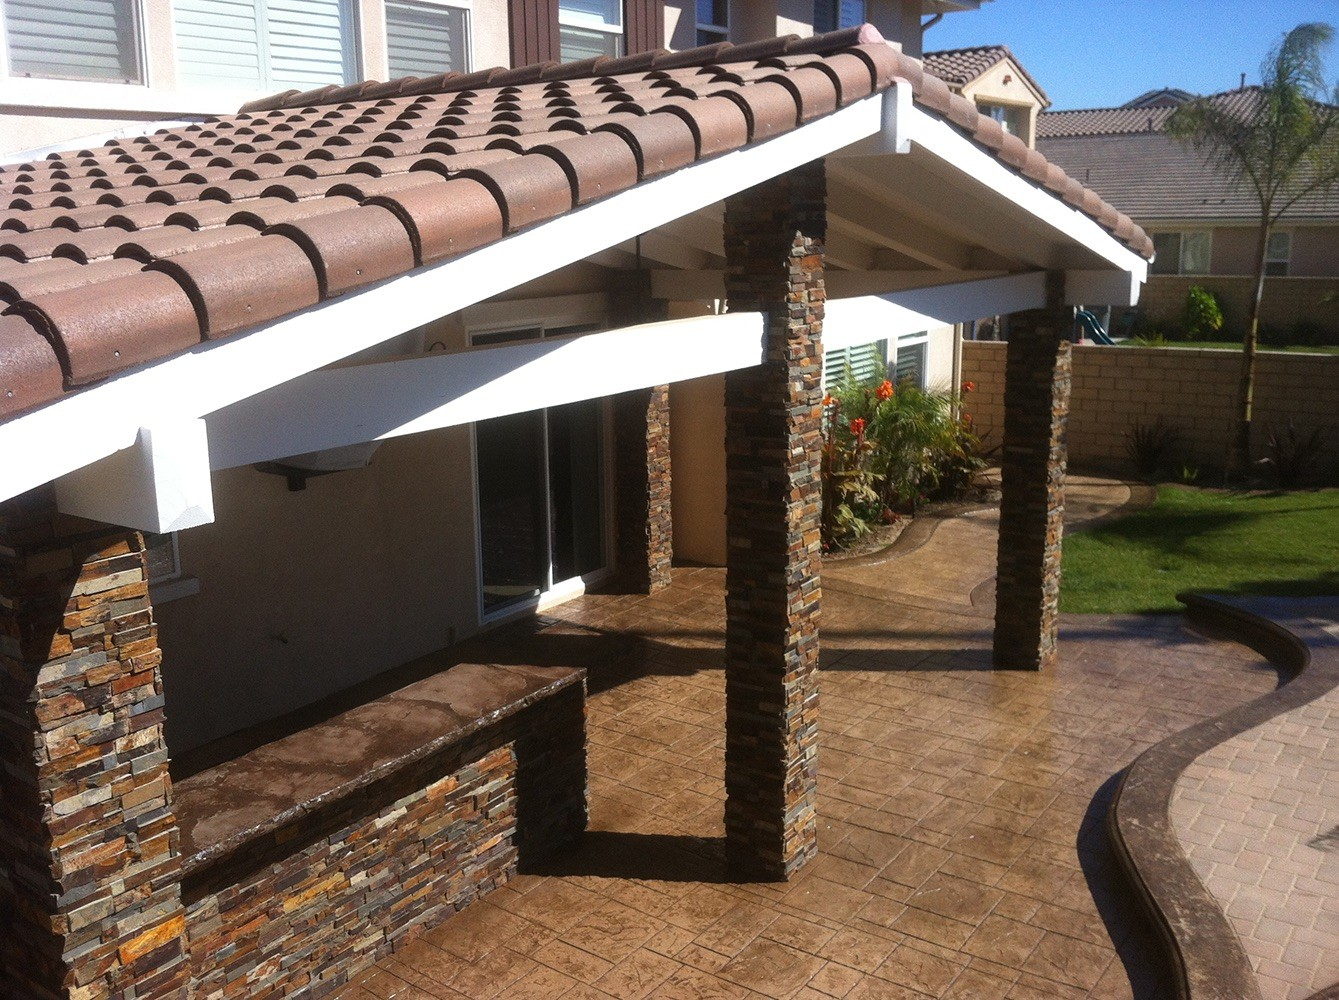 Patio Covers-Boca Raton Pool Screen Enclosure Installation and Patio Screen Repairs Services-We do screen enclosures, patios, pool screens, fences, aluminum roofs, professional screen building, Pool Screen Enclosures, Patio Screen Enclosures, Fences & Gates, Storm Shutters, Decks, Balconies & Railings, Installation, Repairs, and more